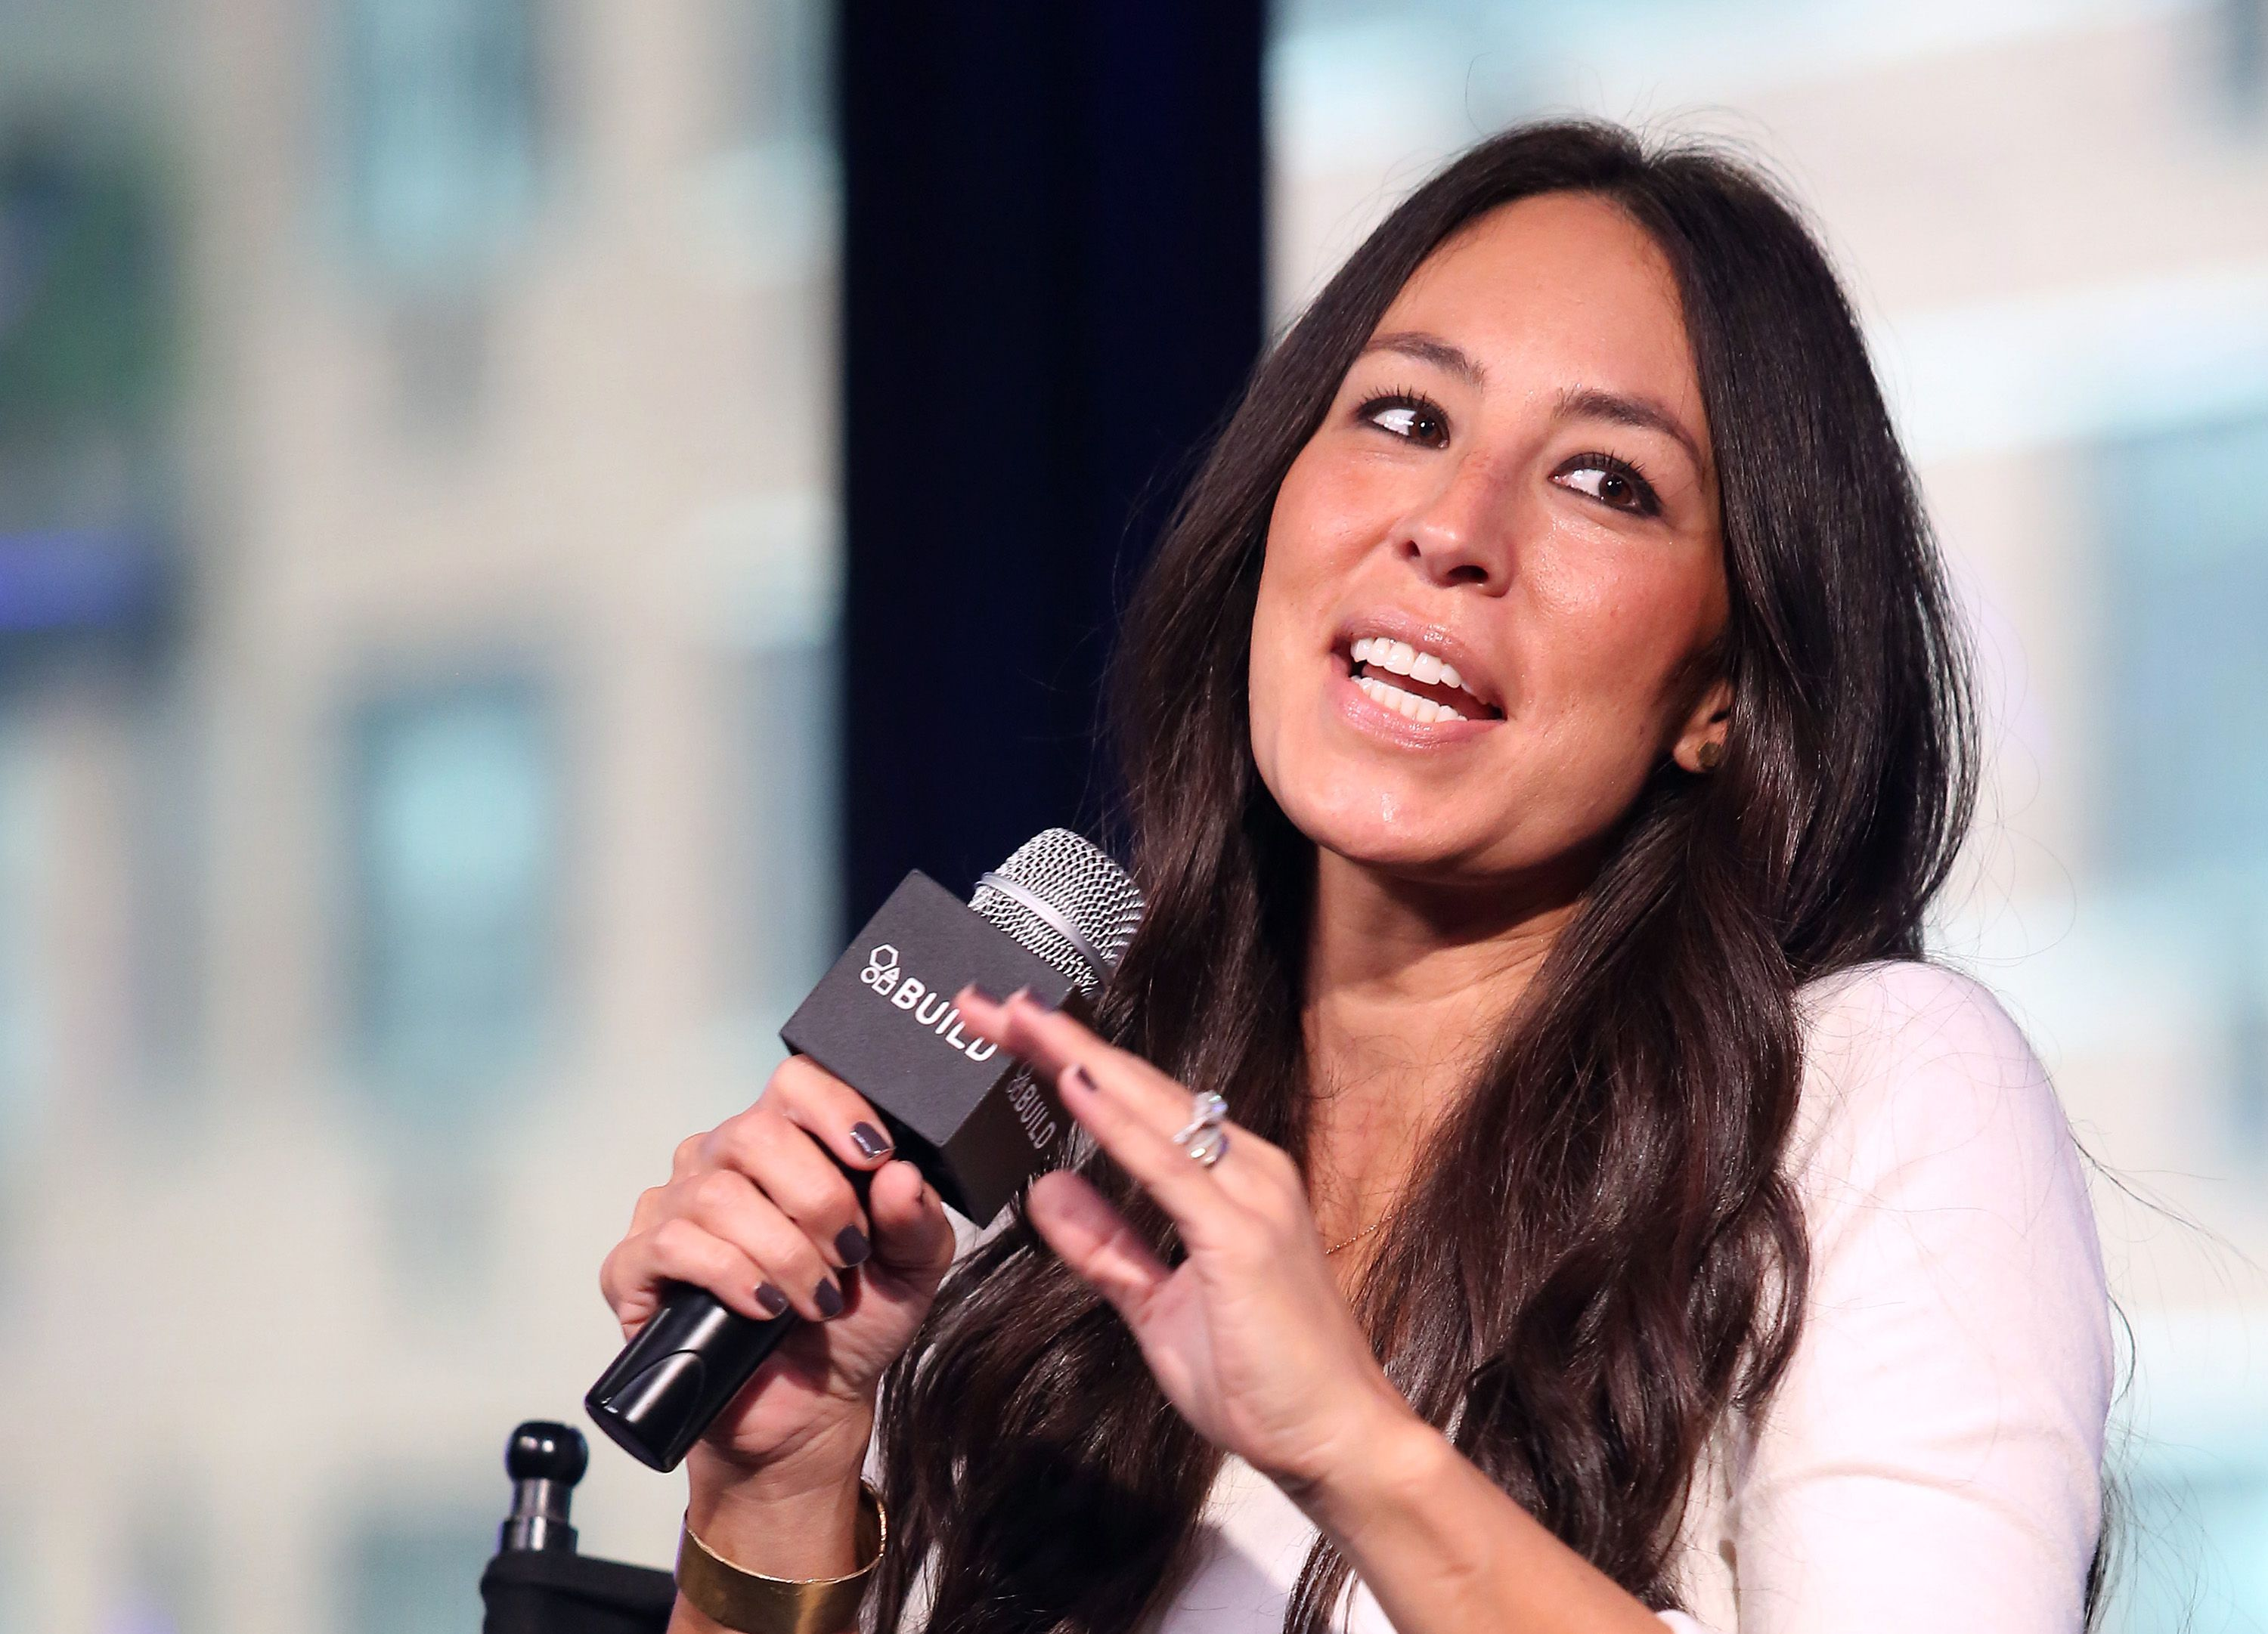 """Joanna Gaines promotes """"The Magnolia Story"""" during the AOL BUILD Series at AOL HQ on October 19, 2016, in New York City 